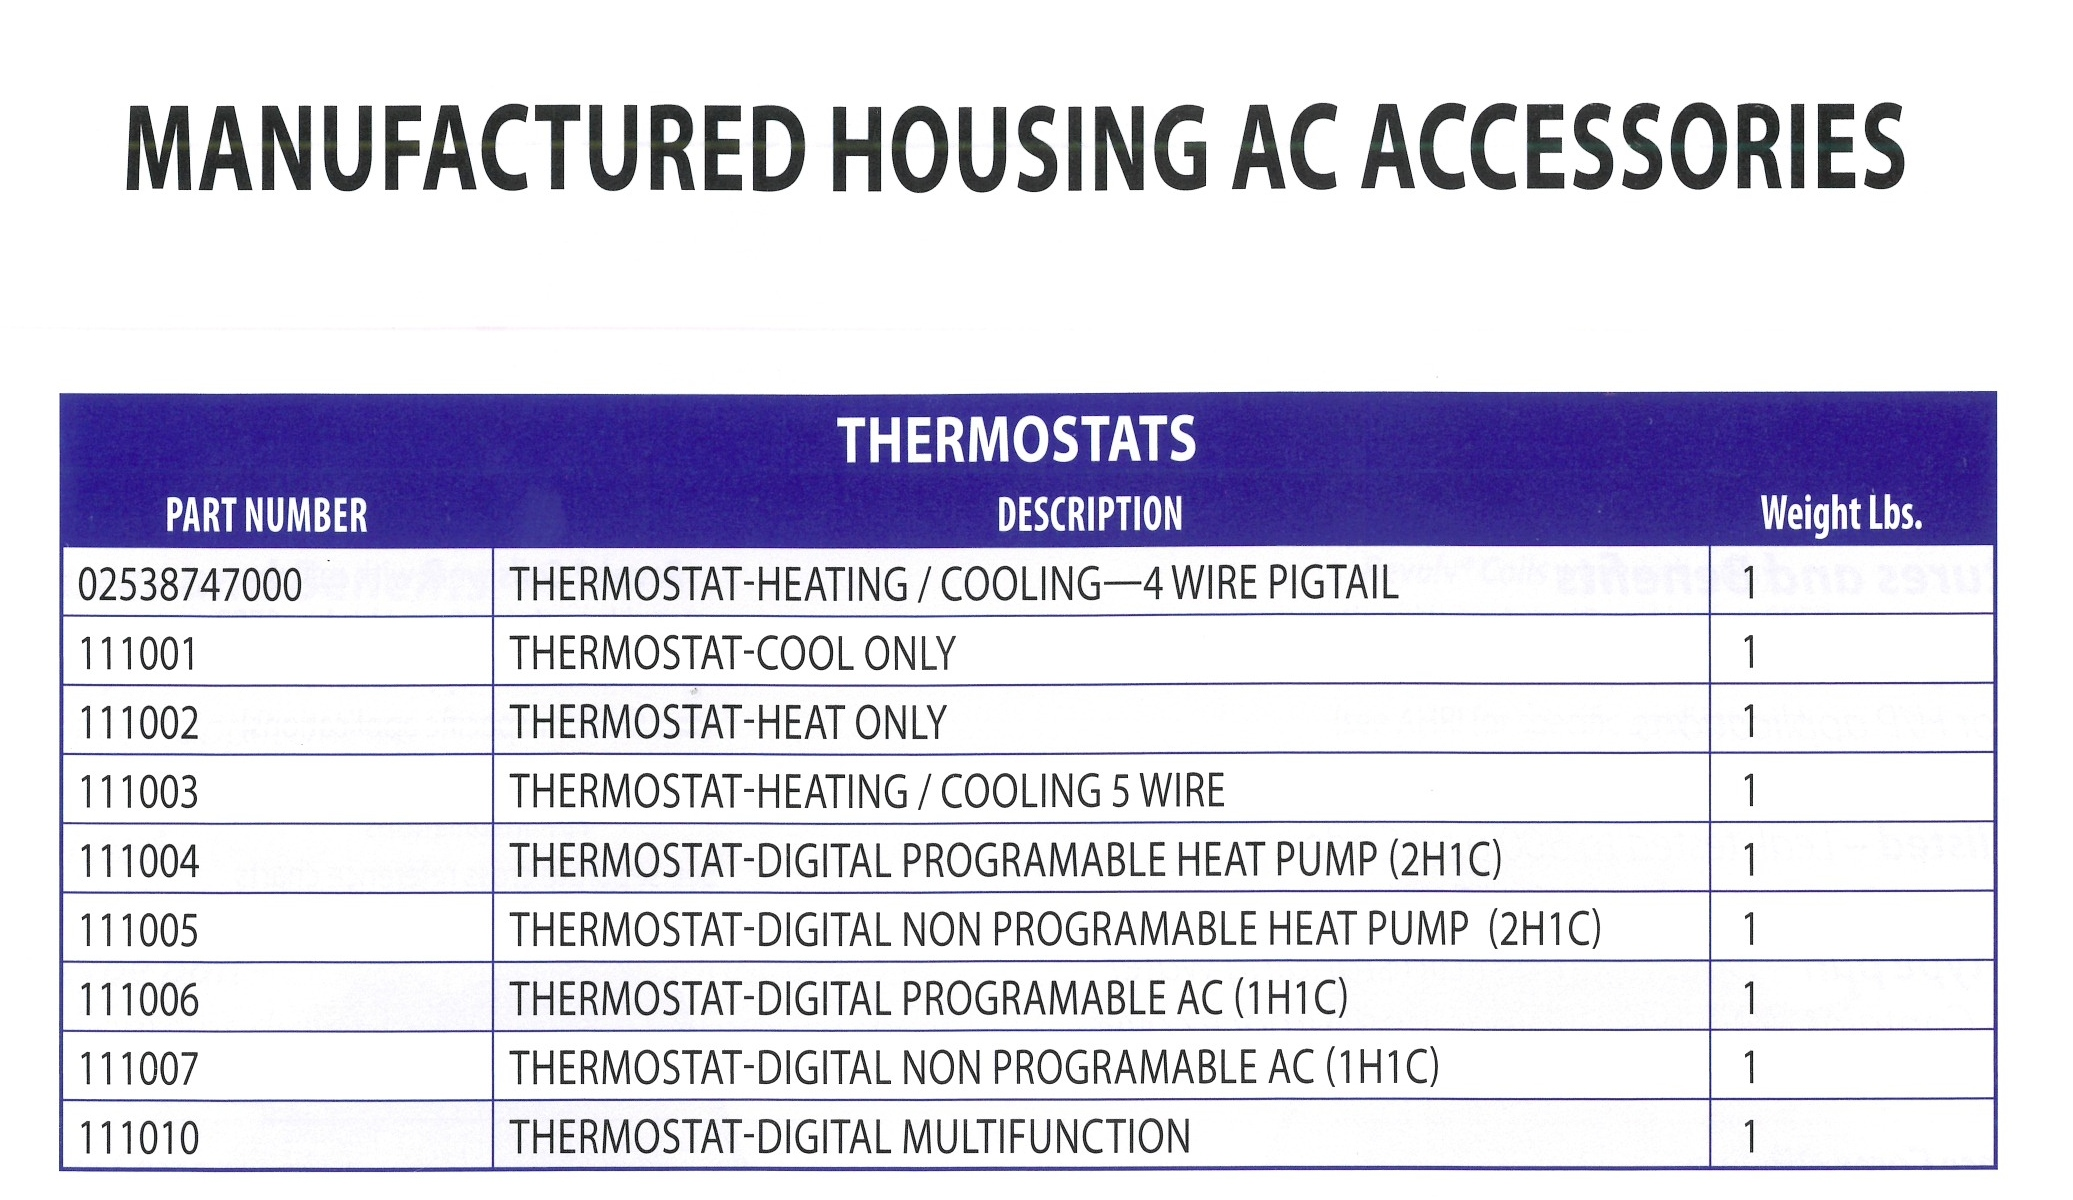 02538747000 -111010 MANUFACTURED HOSUING AC ACCESSORIES